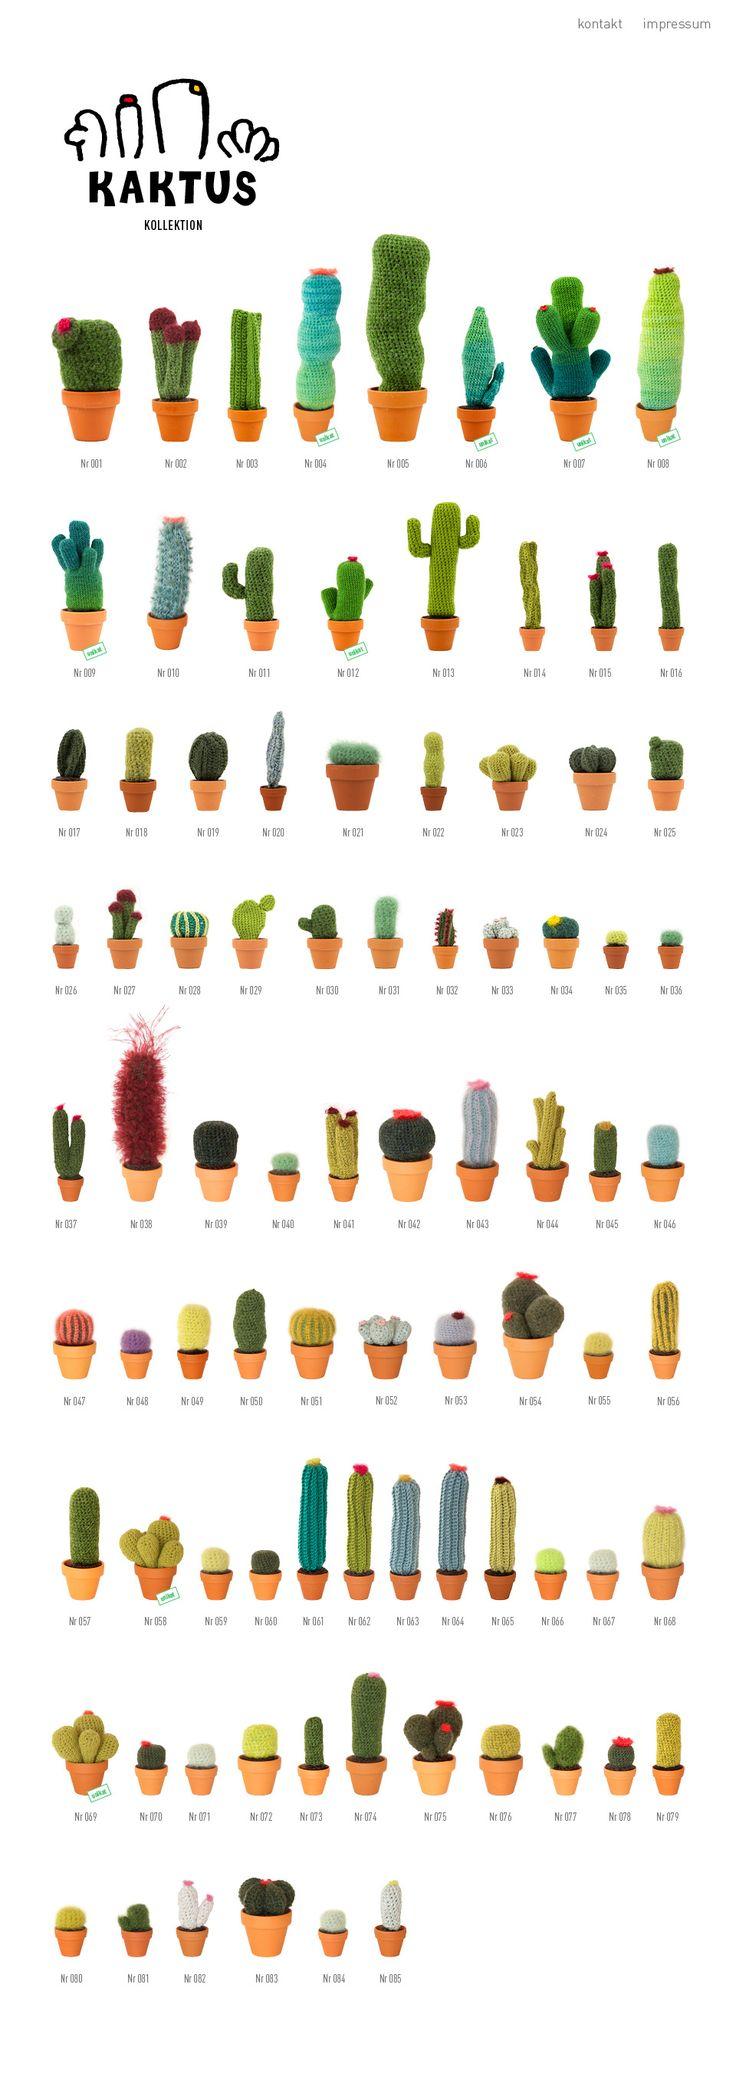 Crochet cactus collection. I want one of each please thank you please